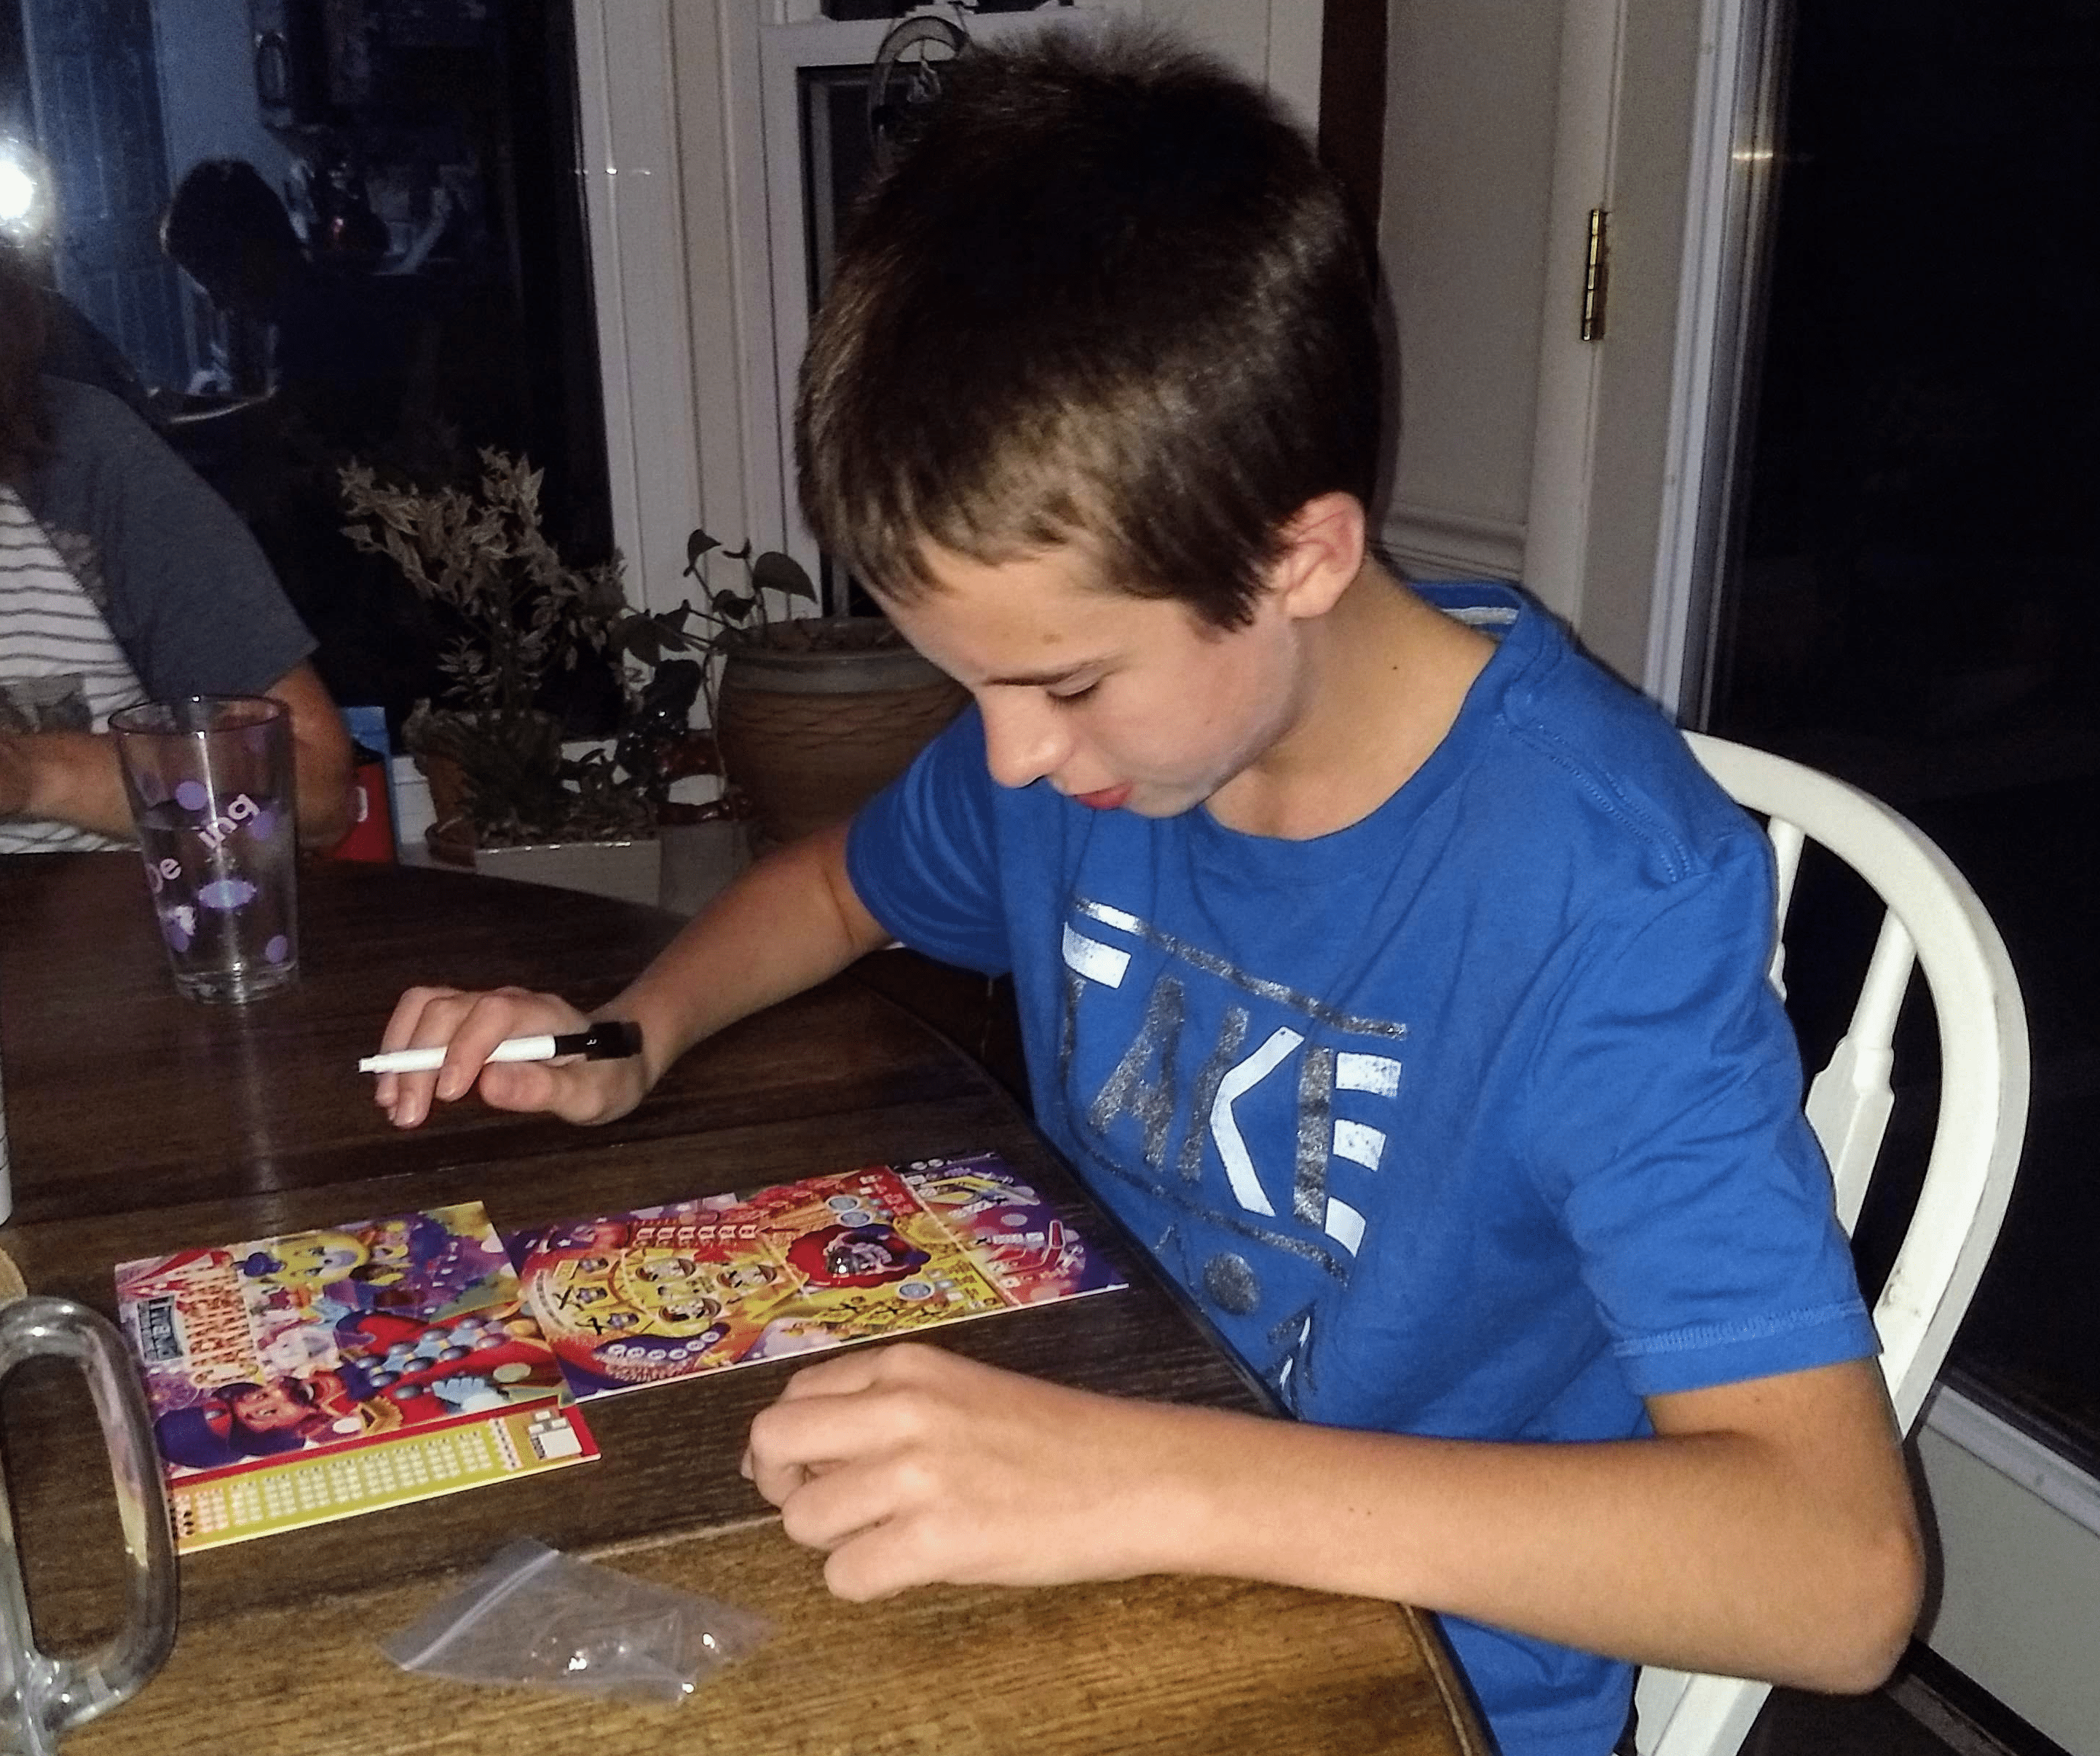 12 year old playing Super-Skill Pinball Game